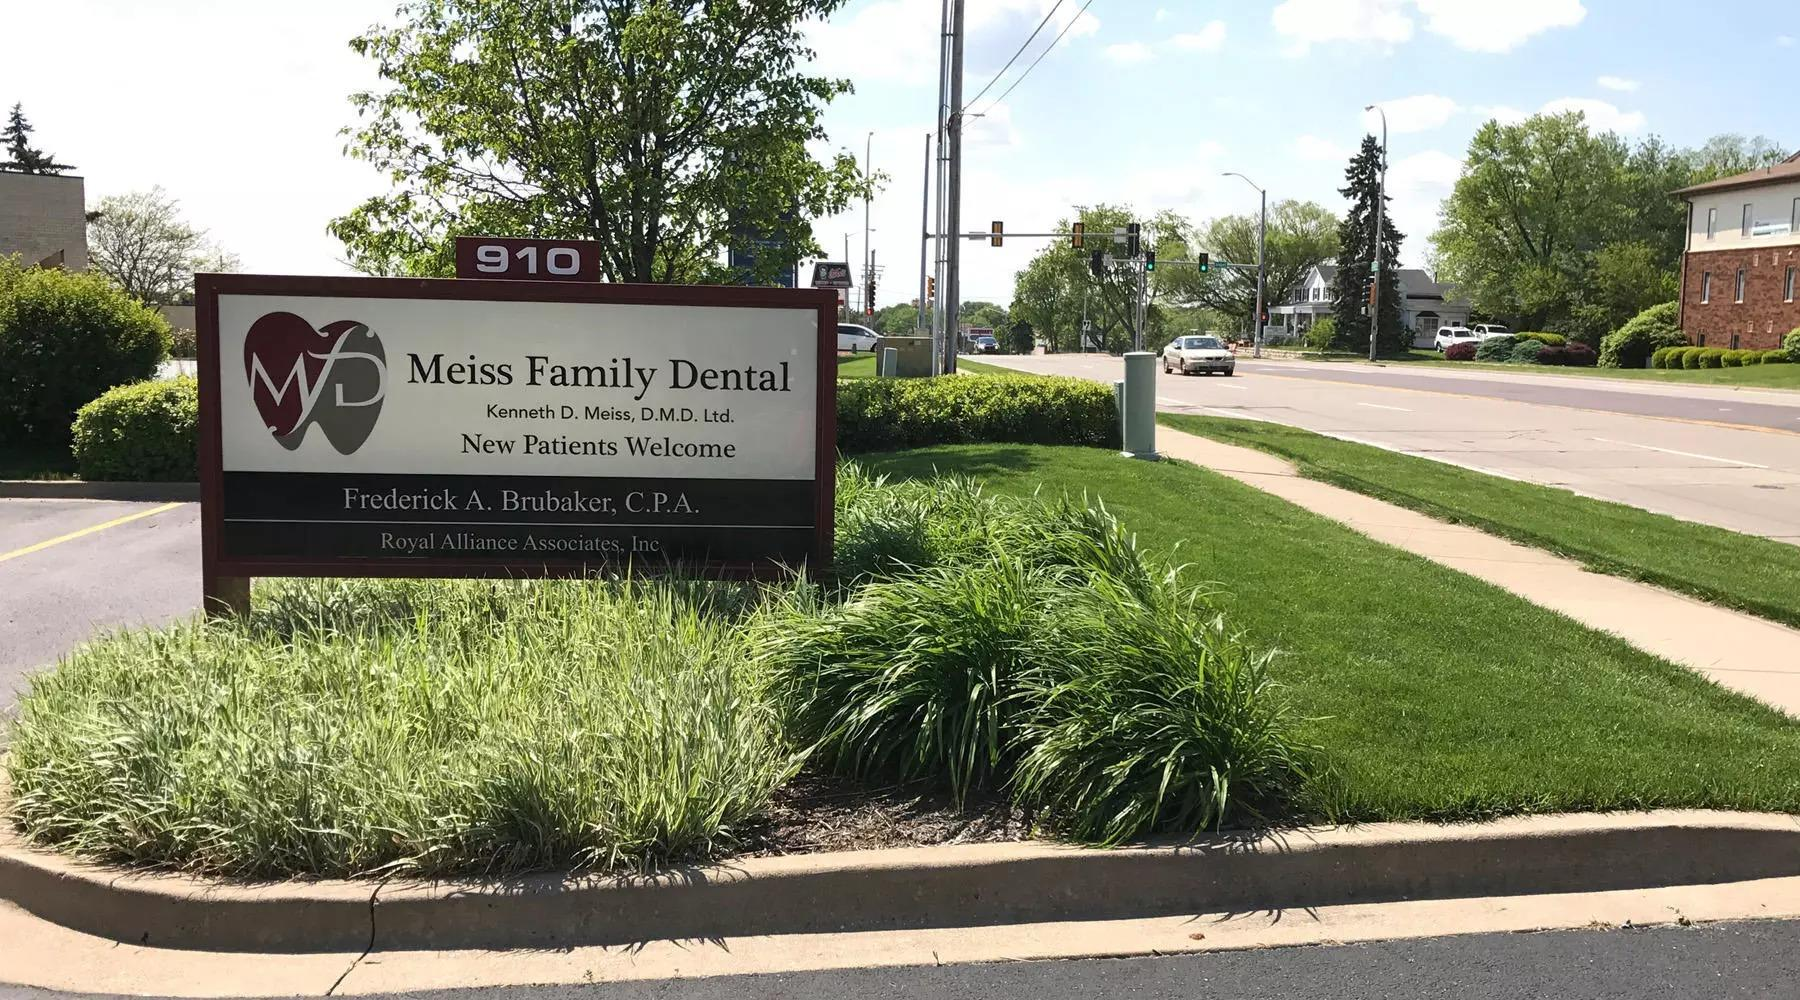 Meiss Family Dental image 2